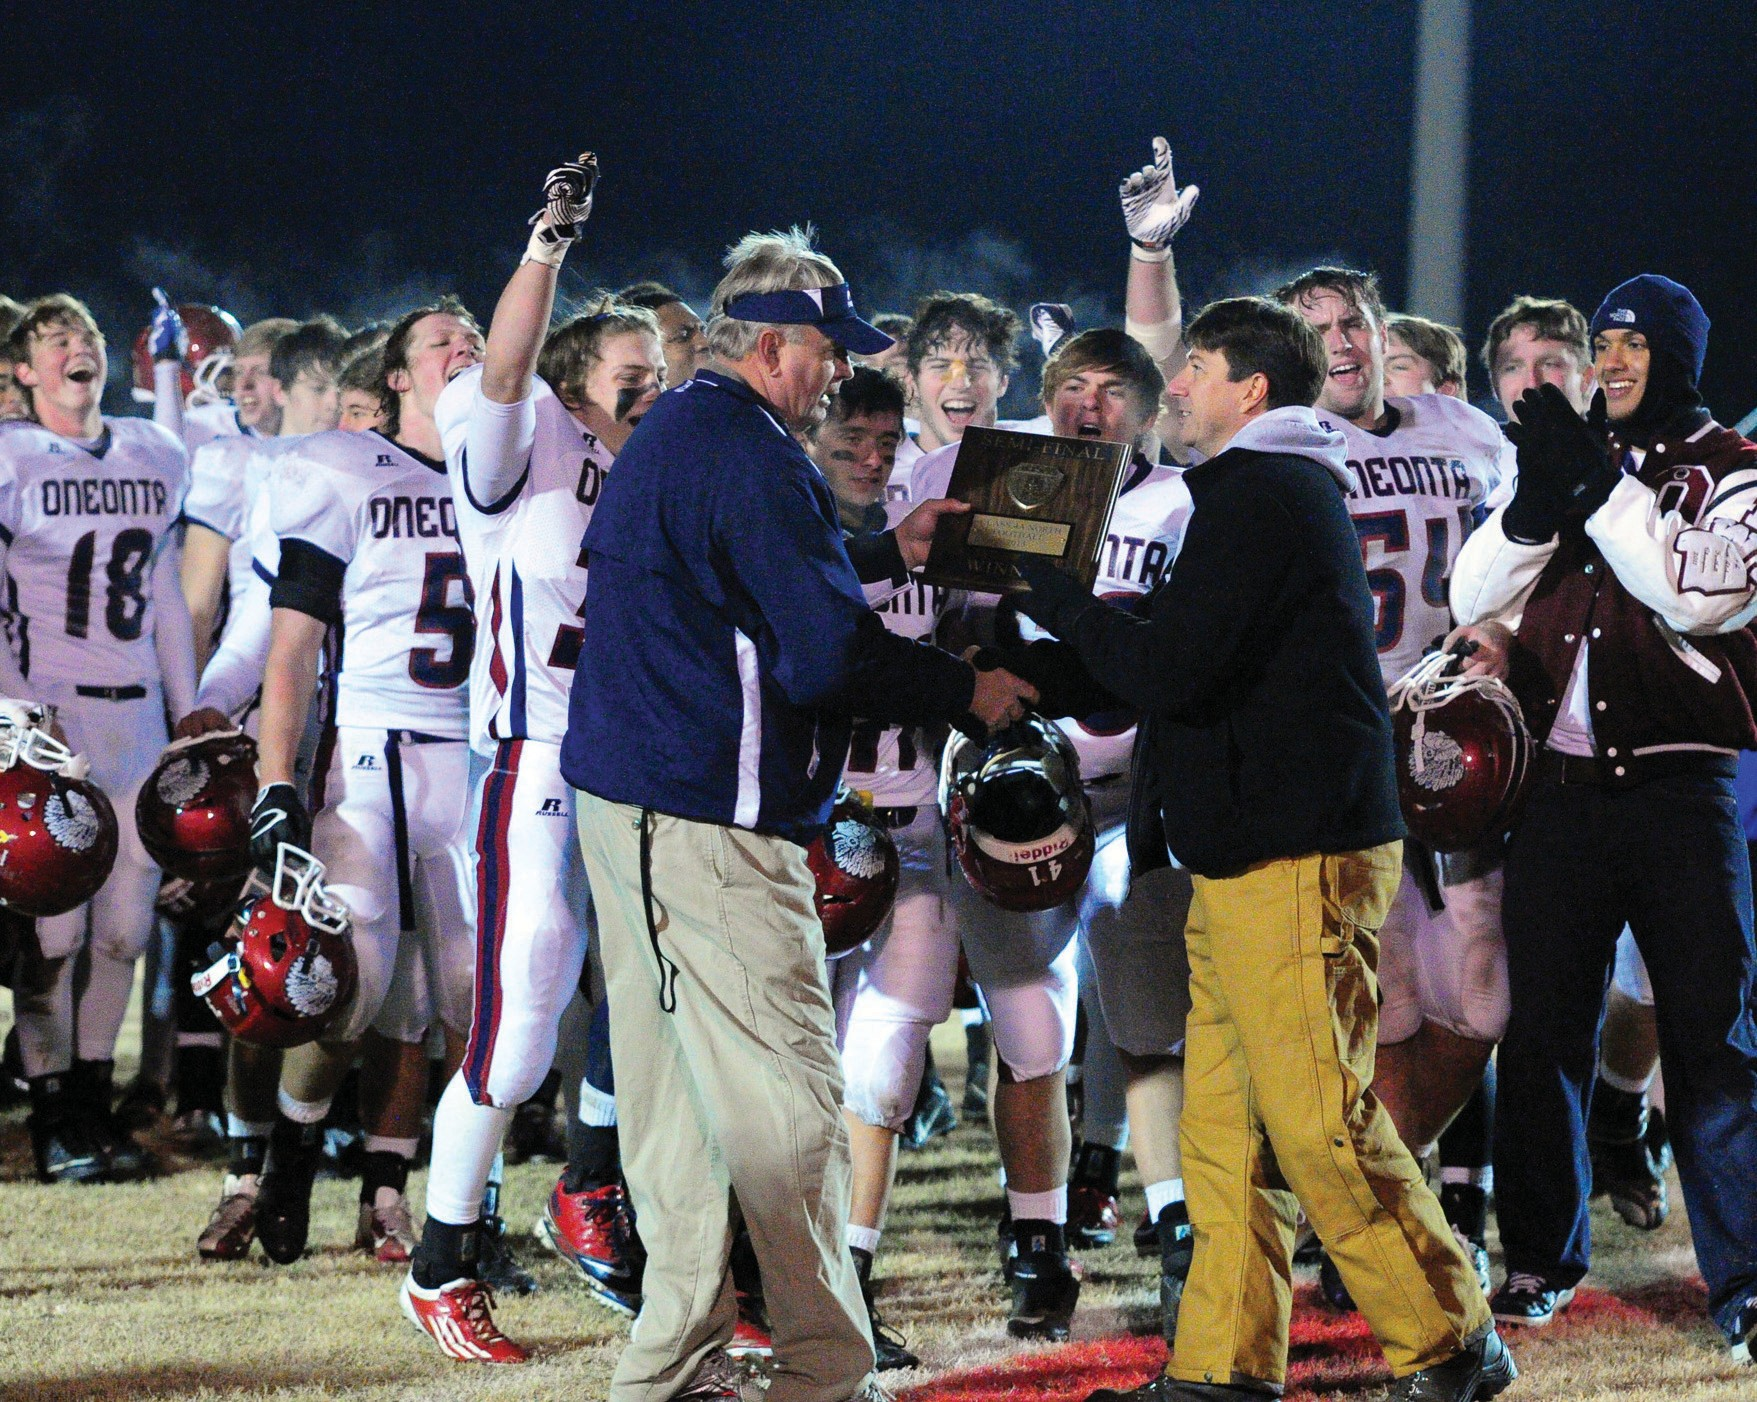 Oneonta head coach Don Jacobs accepts the North Division trophy after last Friday's 35-21 victory over Munford. The Redskins will play Charles Henderson of Troy for the 4A title Friday morning at 11 o'clock at Bryant-Denny Stadium in Tuscaloosa. This is the third straight year that the Redskins have made it to the championship game. For a recap of last week's game and a preview of the title game, see SPORTS A4.